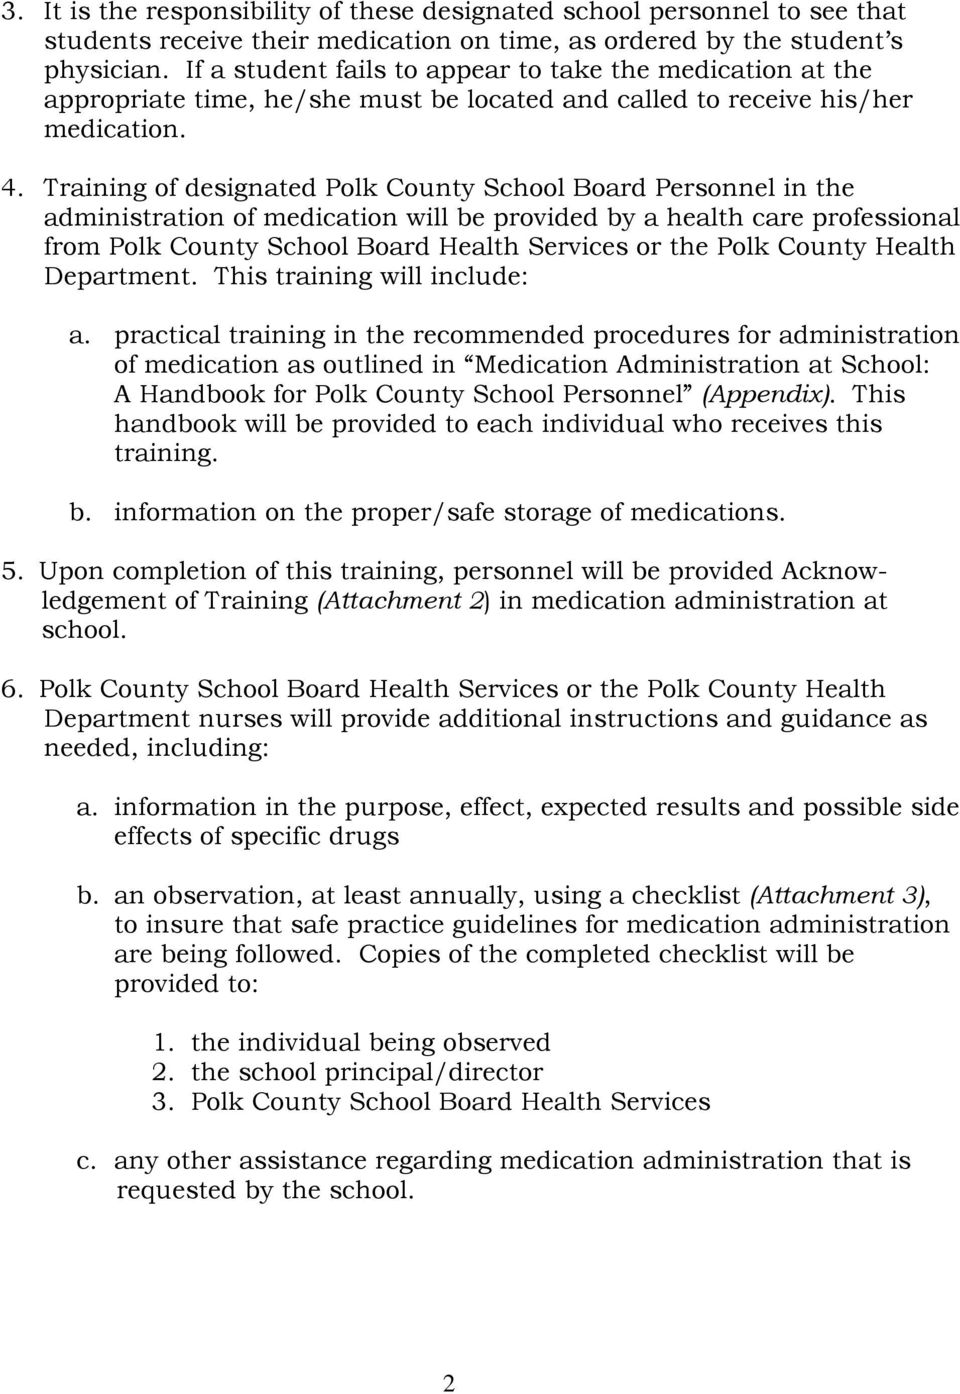 Training of designated Polk County School Board Personnel in the administration of medication will be provided by a health care professional from Polk County School Board Health Services or the Polk